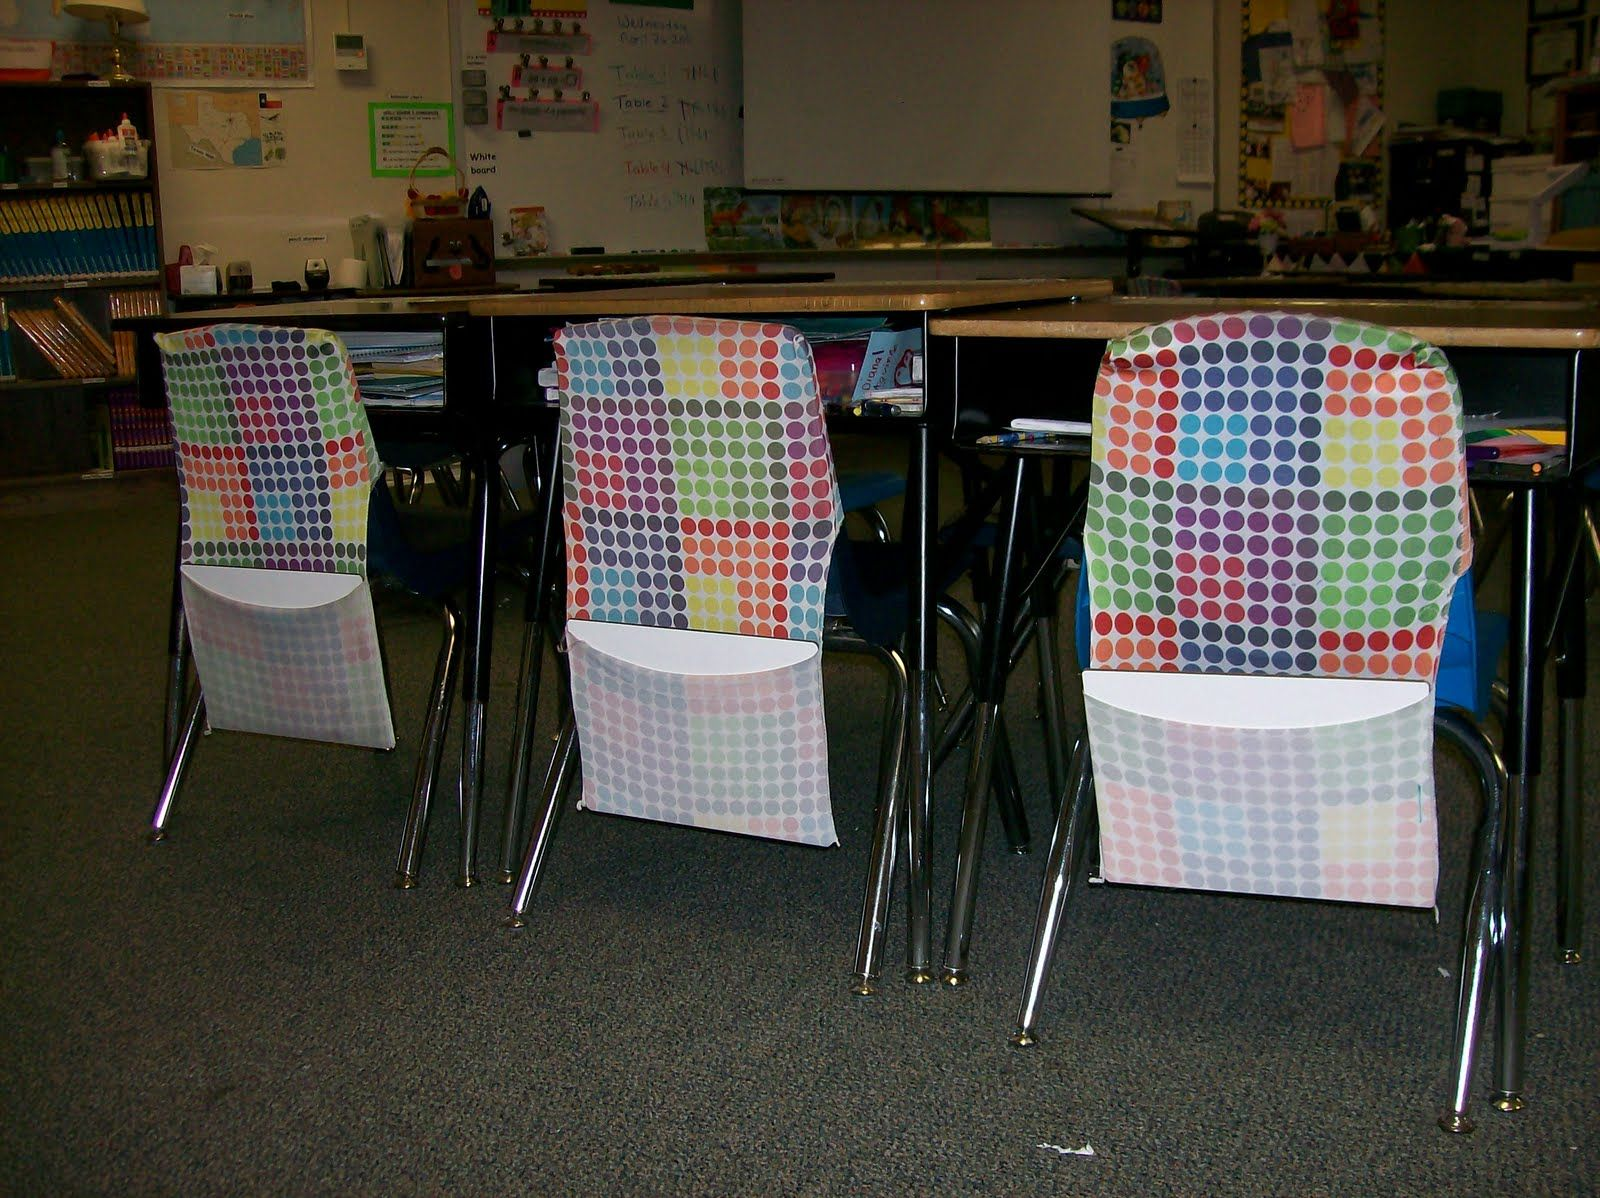 Classroom Chair Covers With Pocket Most Expensive Gaming In The World I Use Stretchy Book To Hold Whiteboards, A Black Sock (eraser), And Marker. Don't Put ...